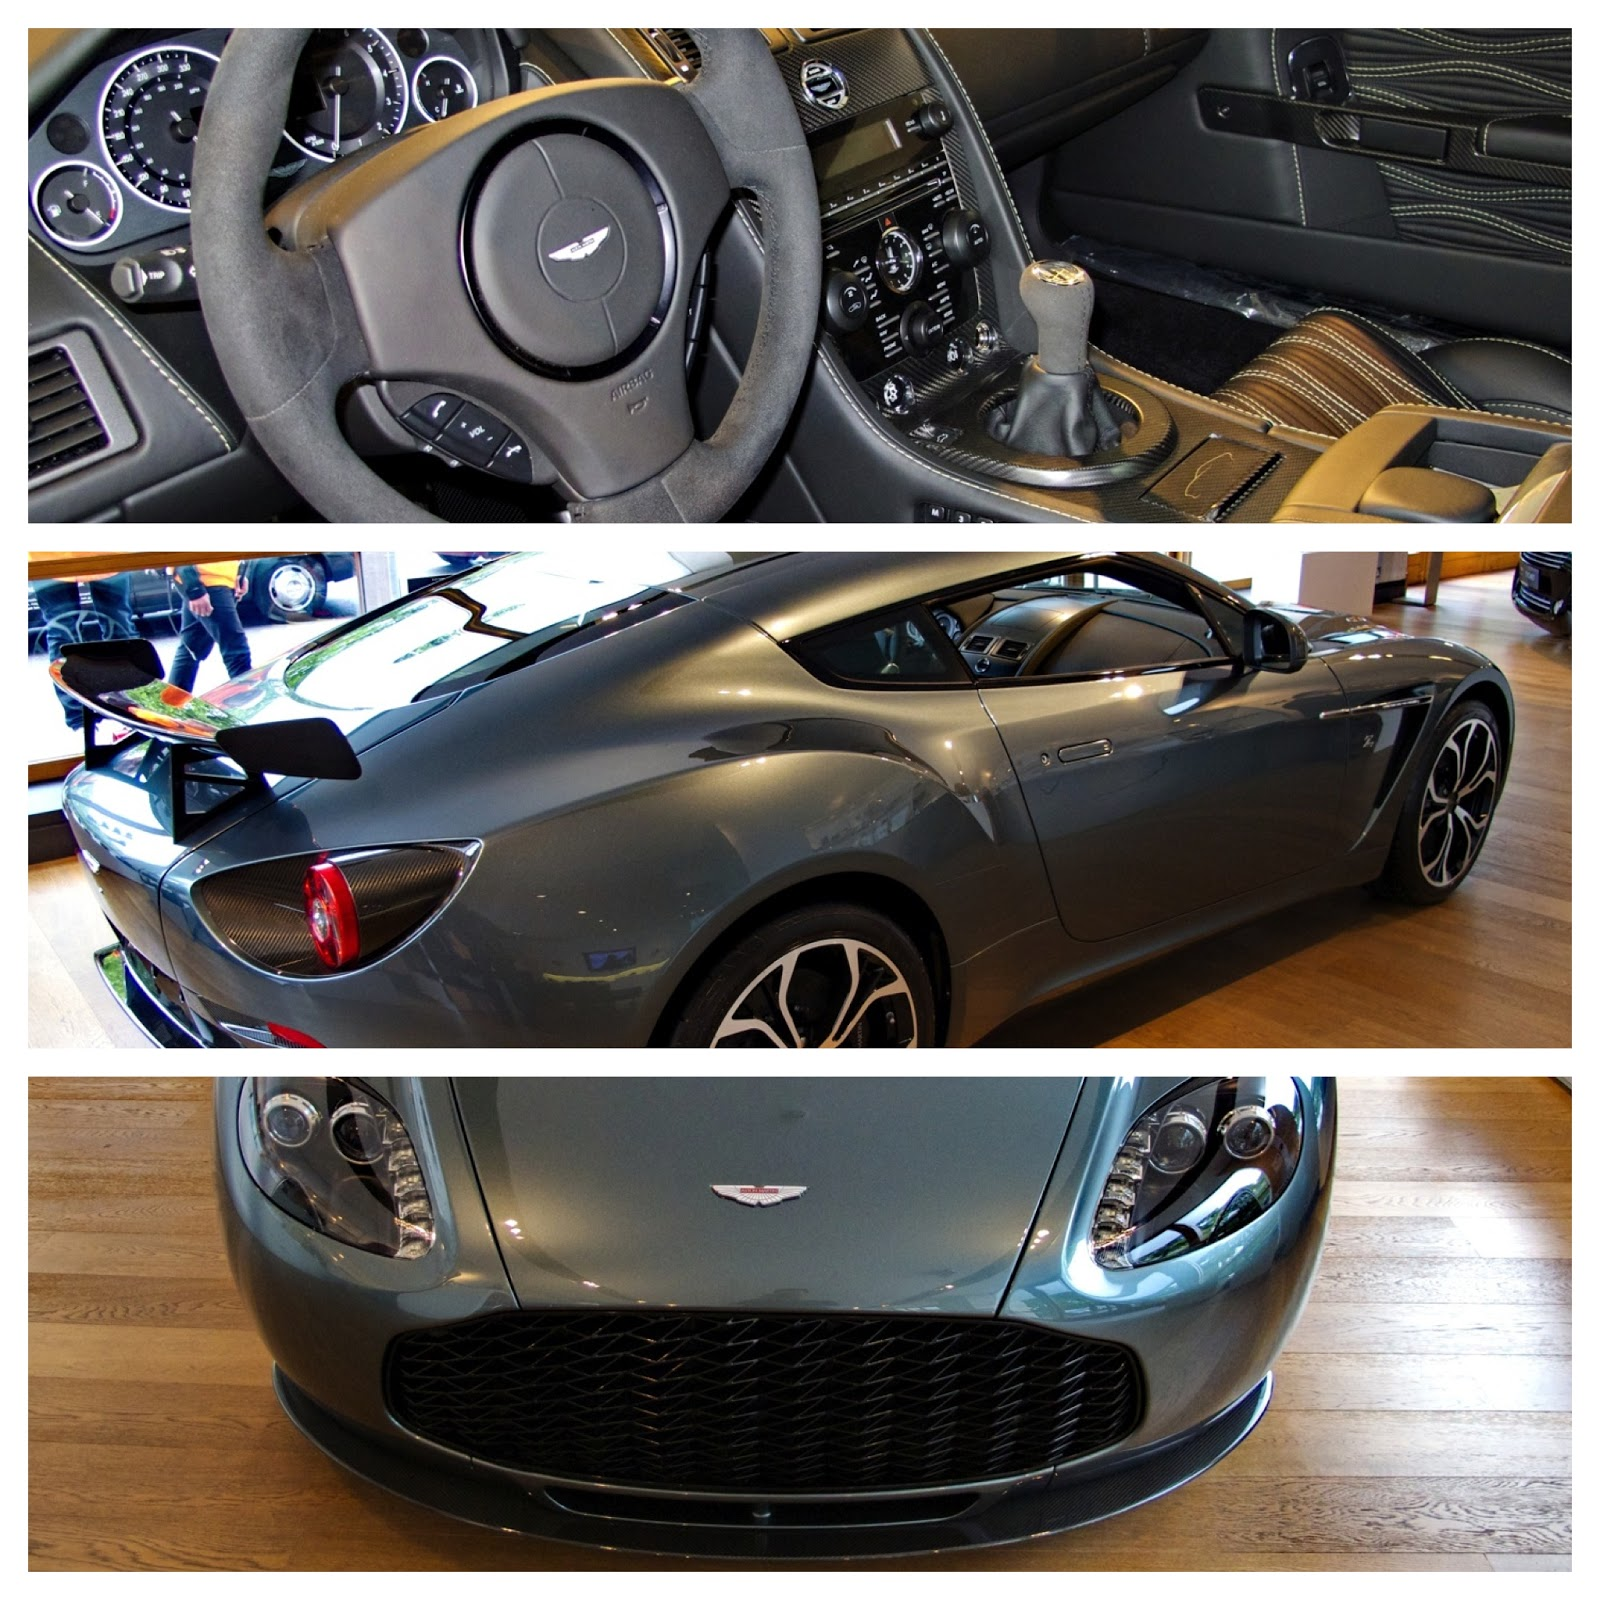 Aston Martin V12 Zagato From London - Cars & Life